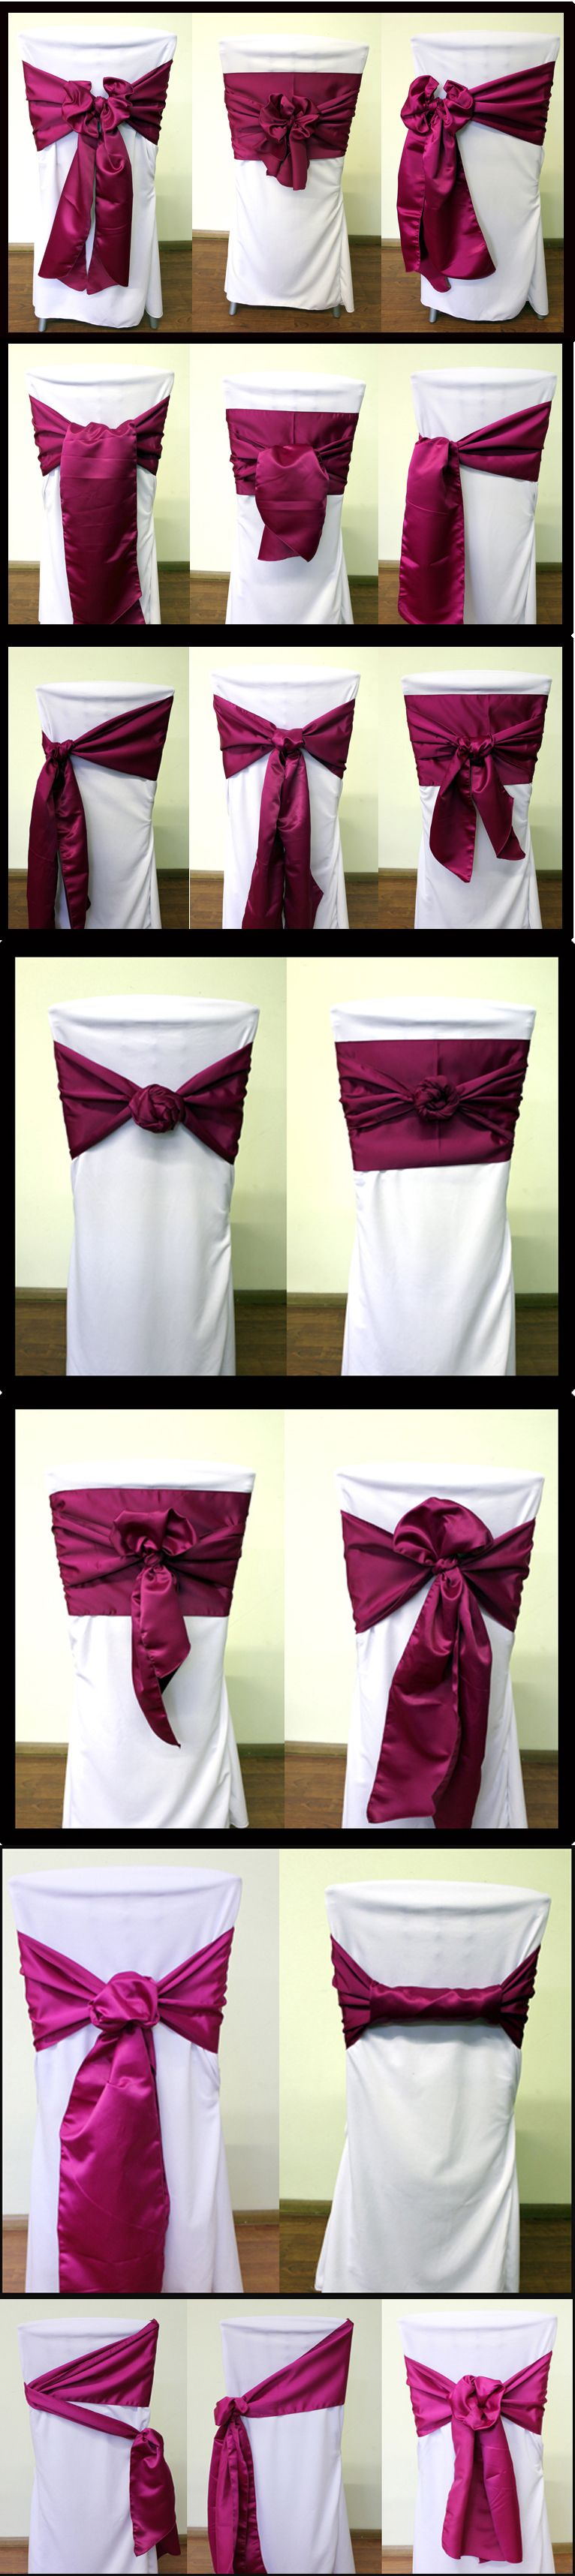 diy chair covers for wedding